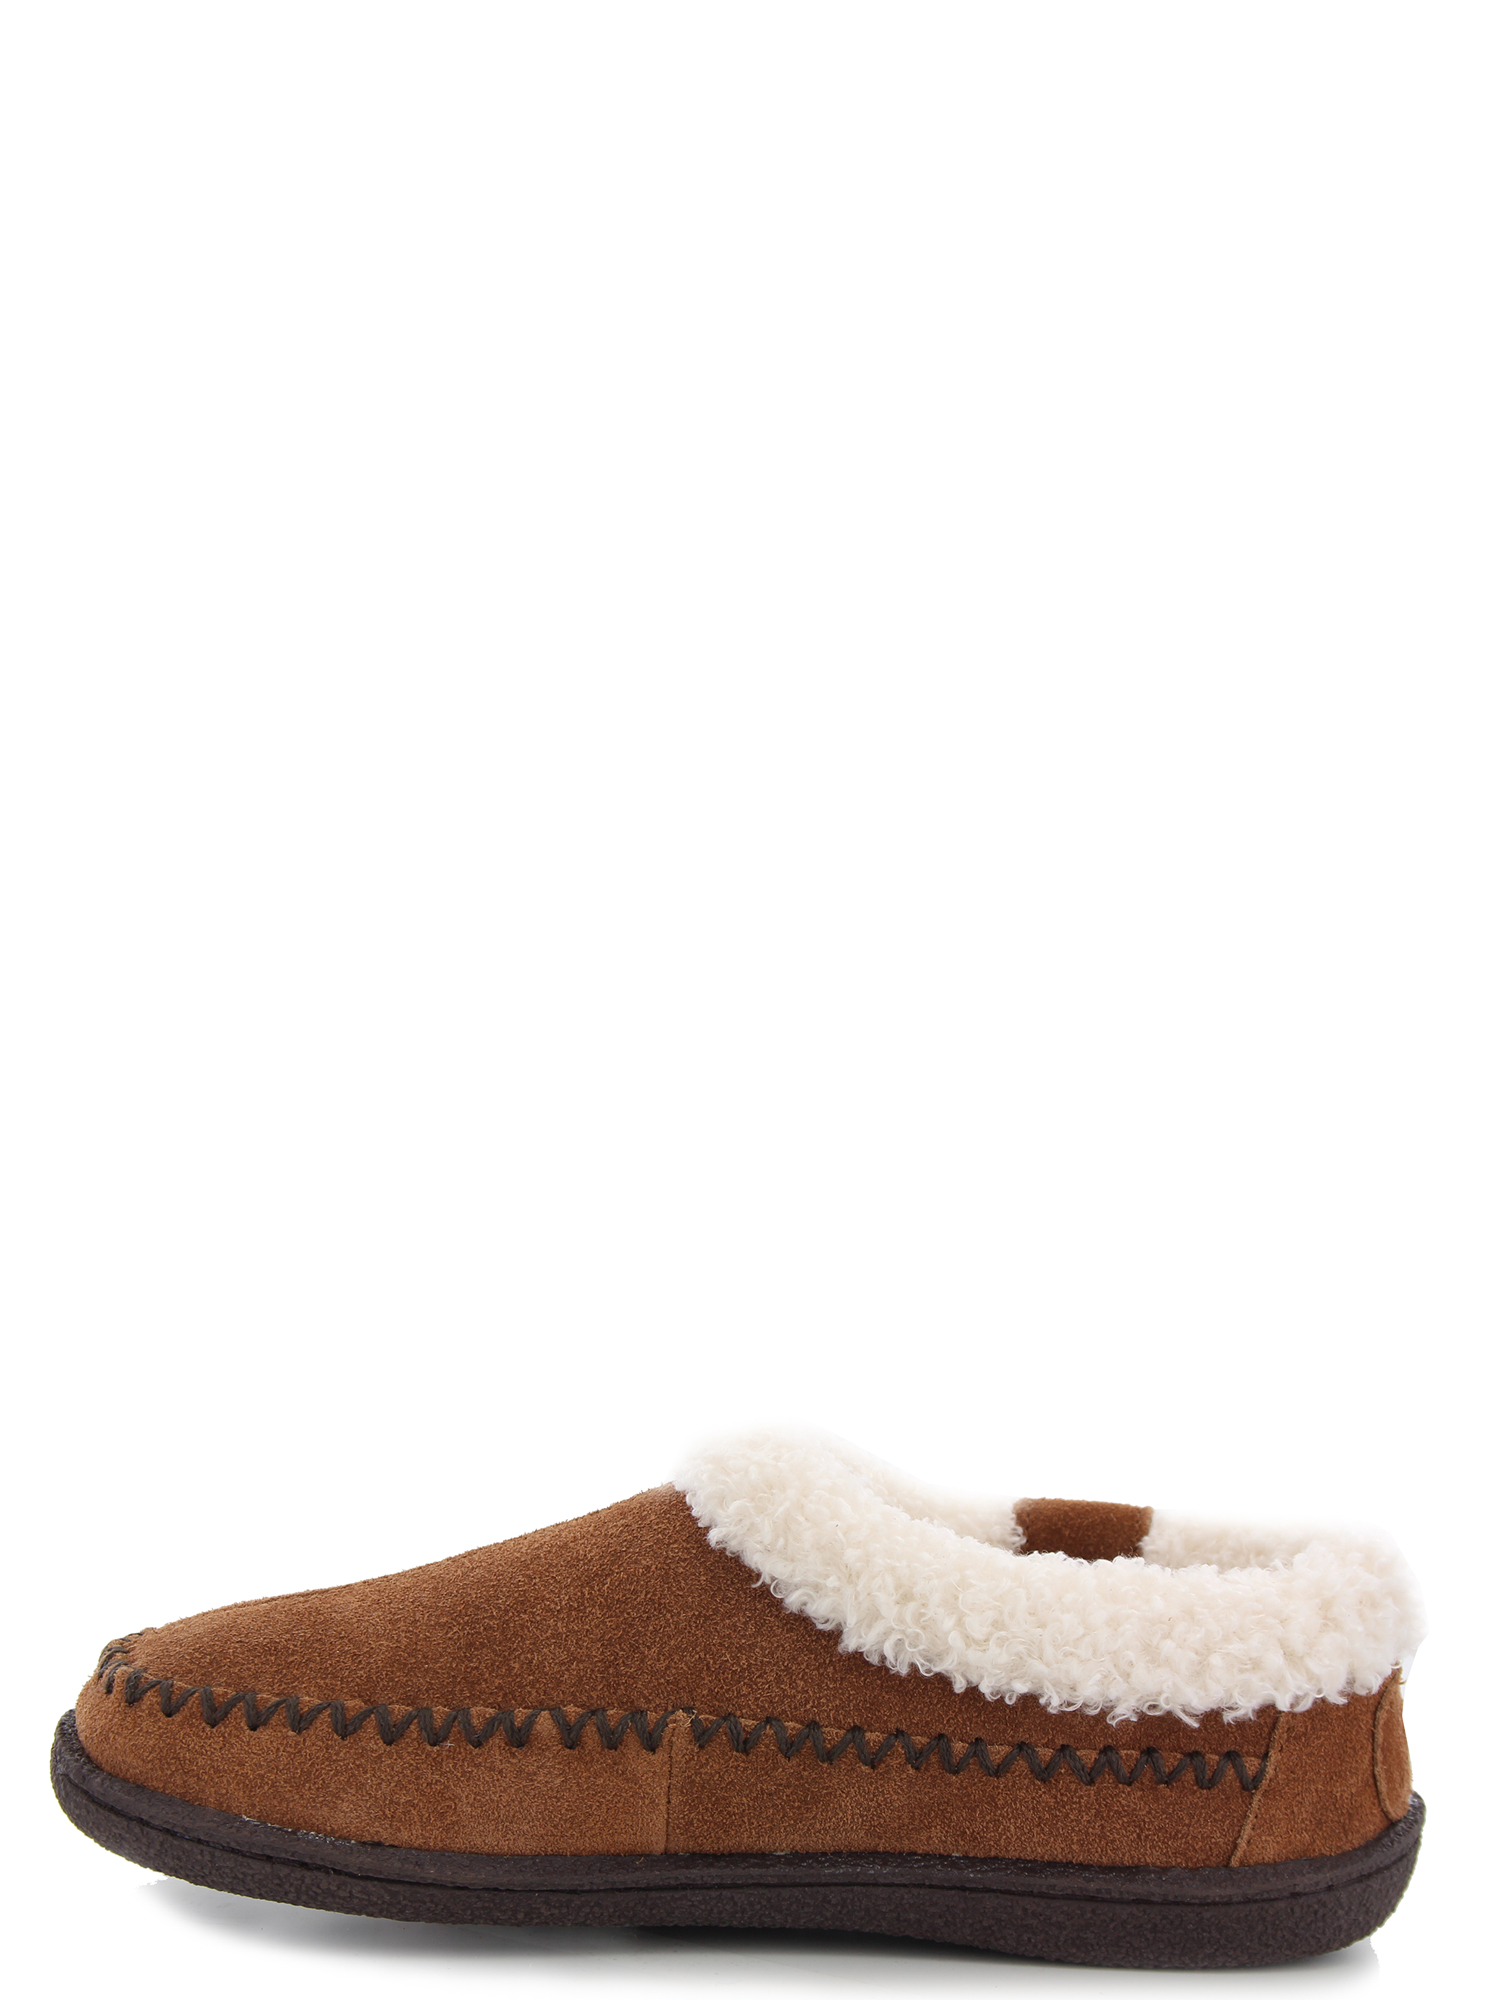 Staheekum Women's Soothe Slipper Economical, stylish, and eye-catching shoes